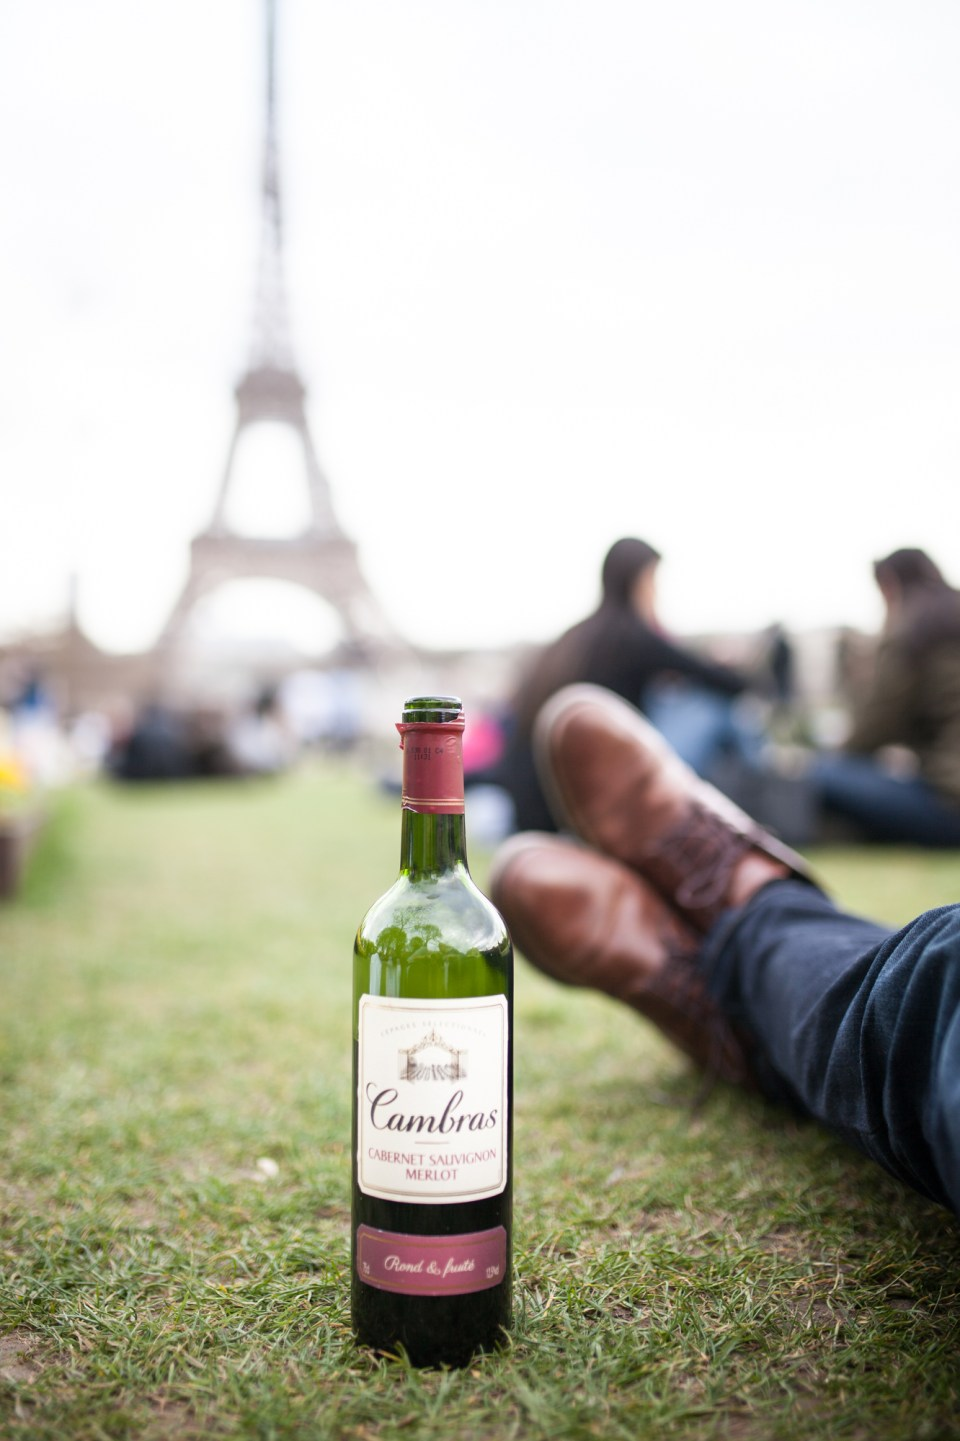 bottle of wine under the Eiffel Tower Paris France